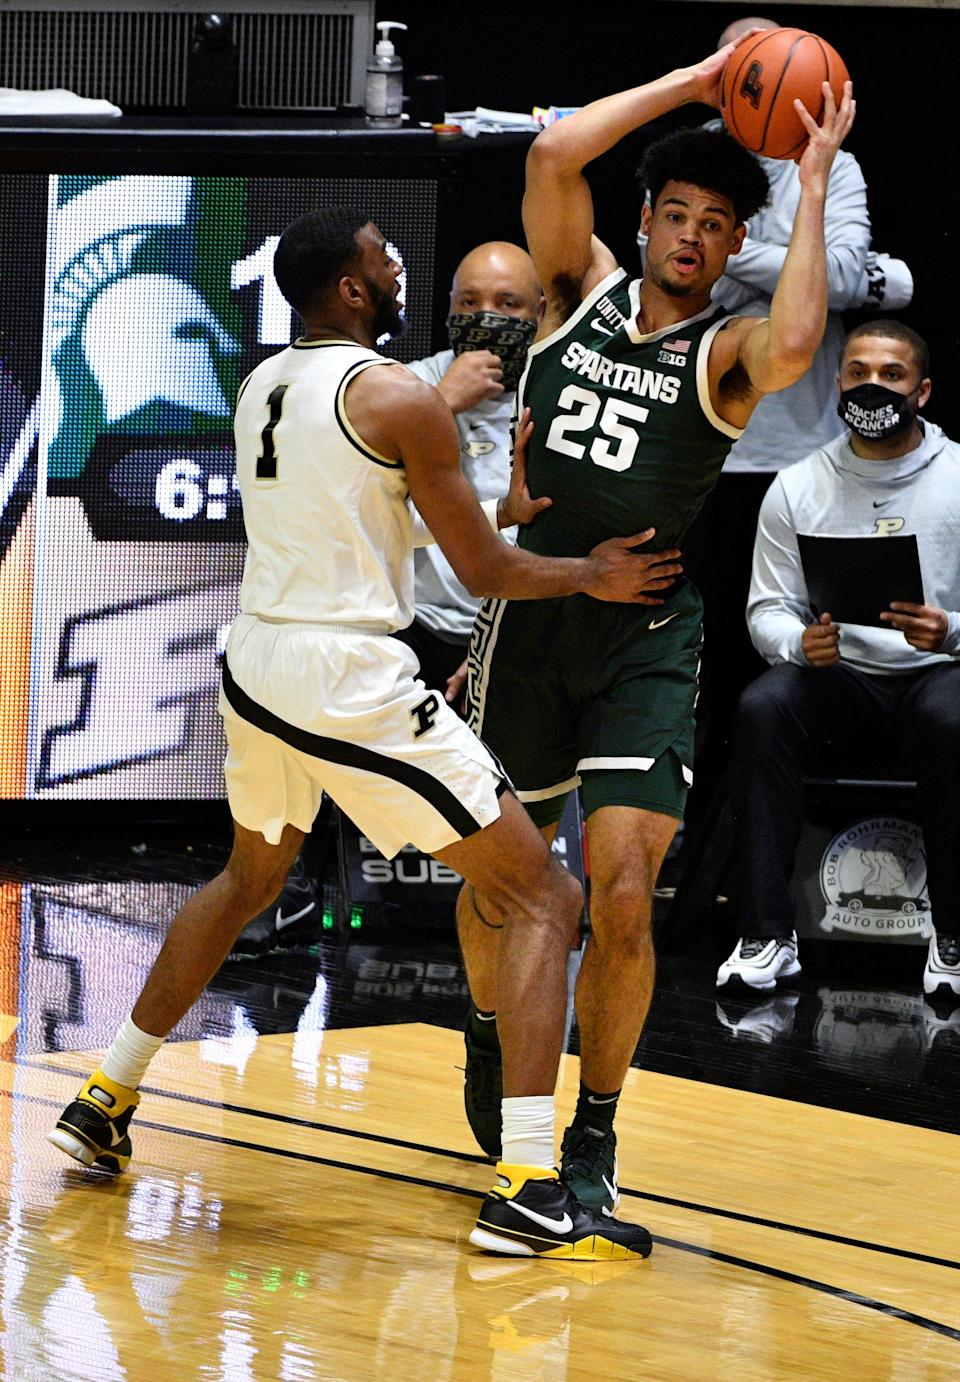 Feb 16, 2021; West Lafayette, Indiana, USA;  Michigan State Spartans forward Malik Hall (25) looks to get the ball away from Purdue Boilermakers forward Aaron Wheeler (1) during the first half of the game at Mackey Arena. Mandatory Credit: Marc Lebryk-USA TODAY Sports